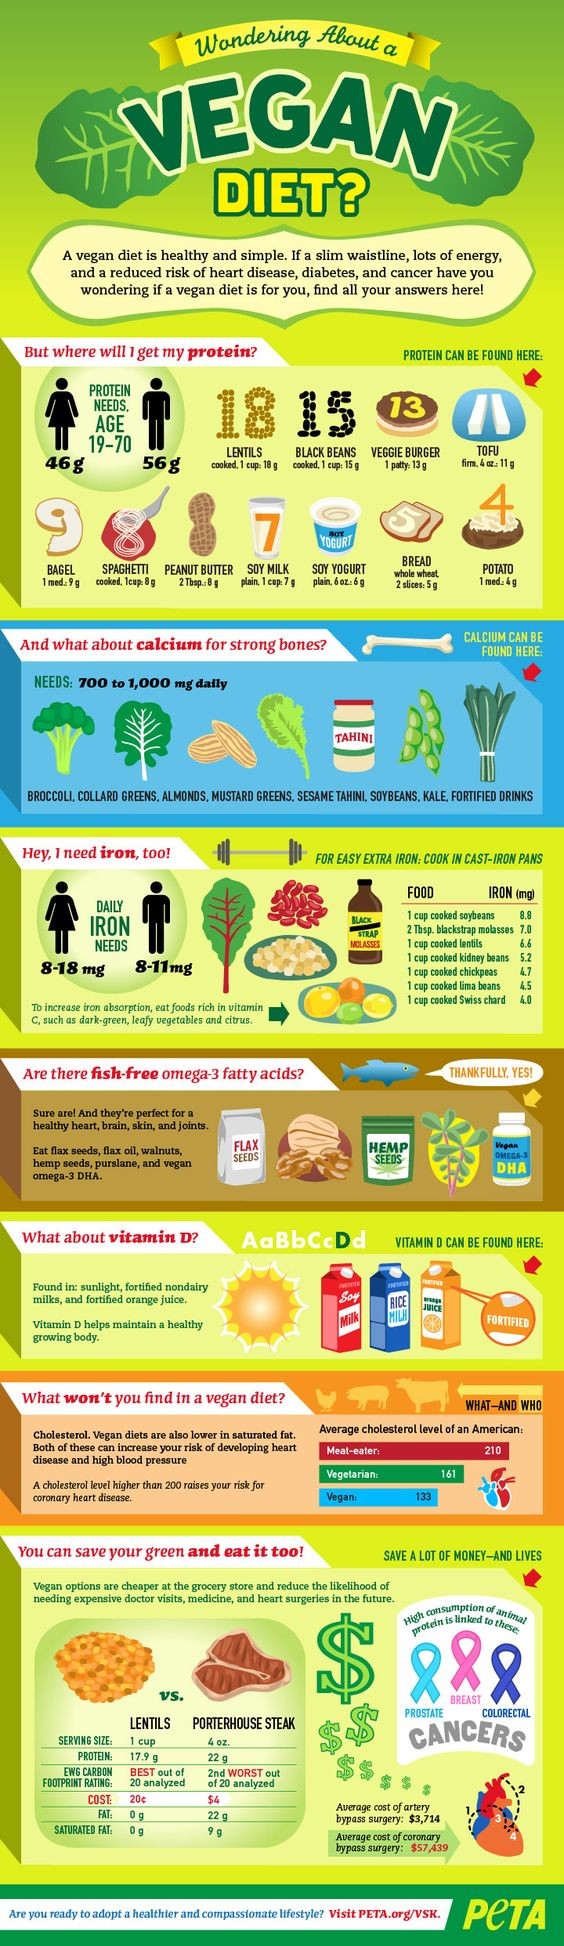 #Vegan Diet - Where do you get your protein?